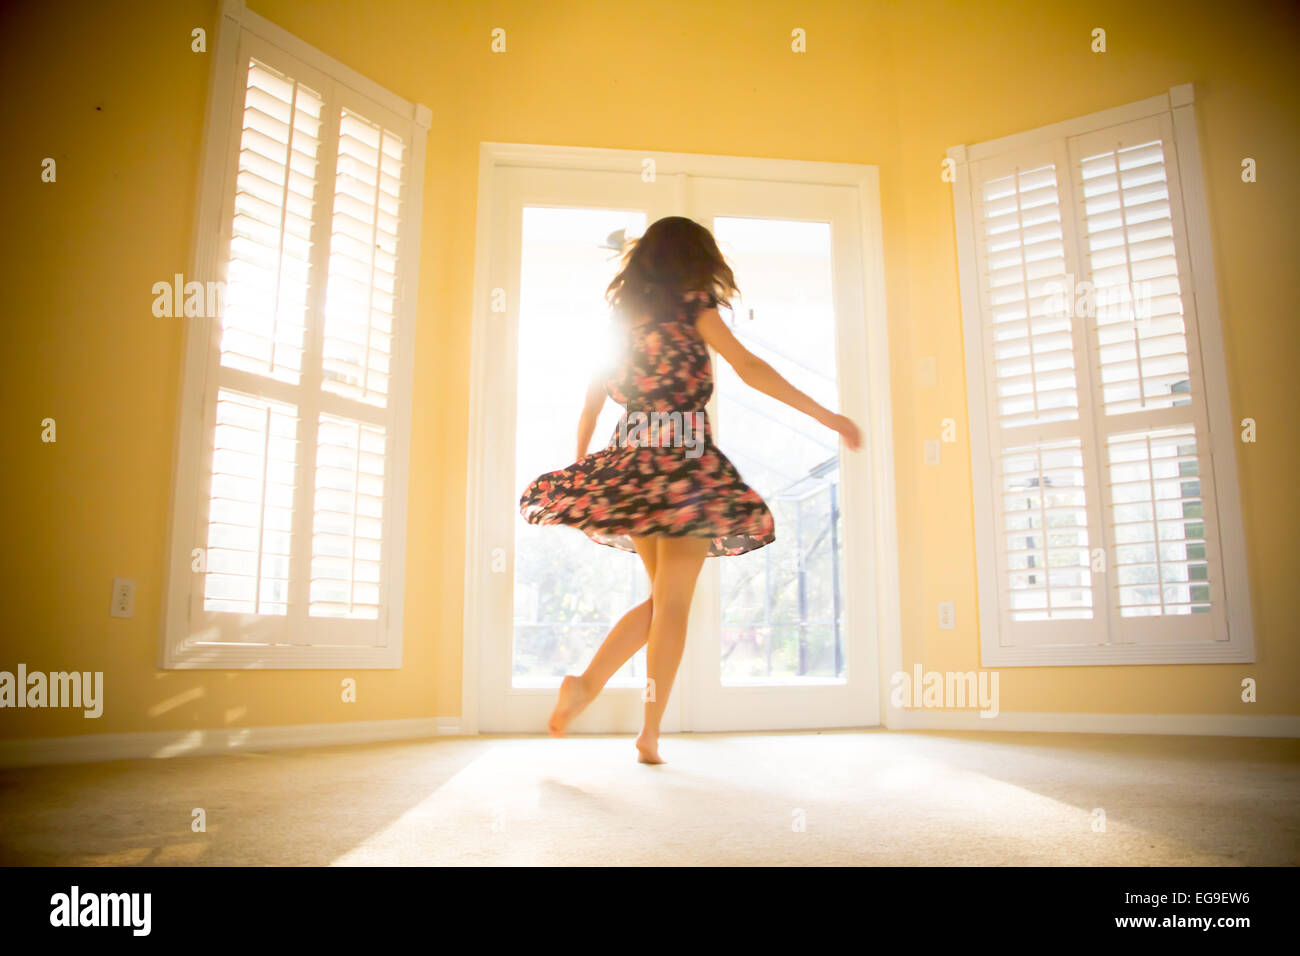 Young woman spinning in sunny room - Stock Image